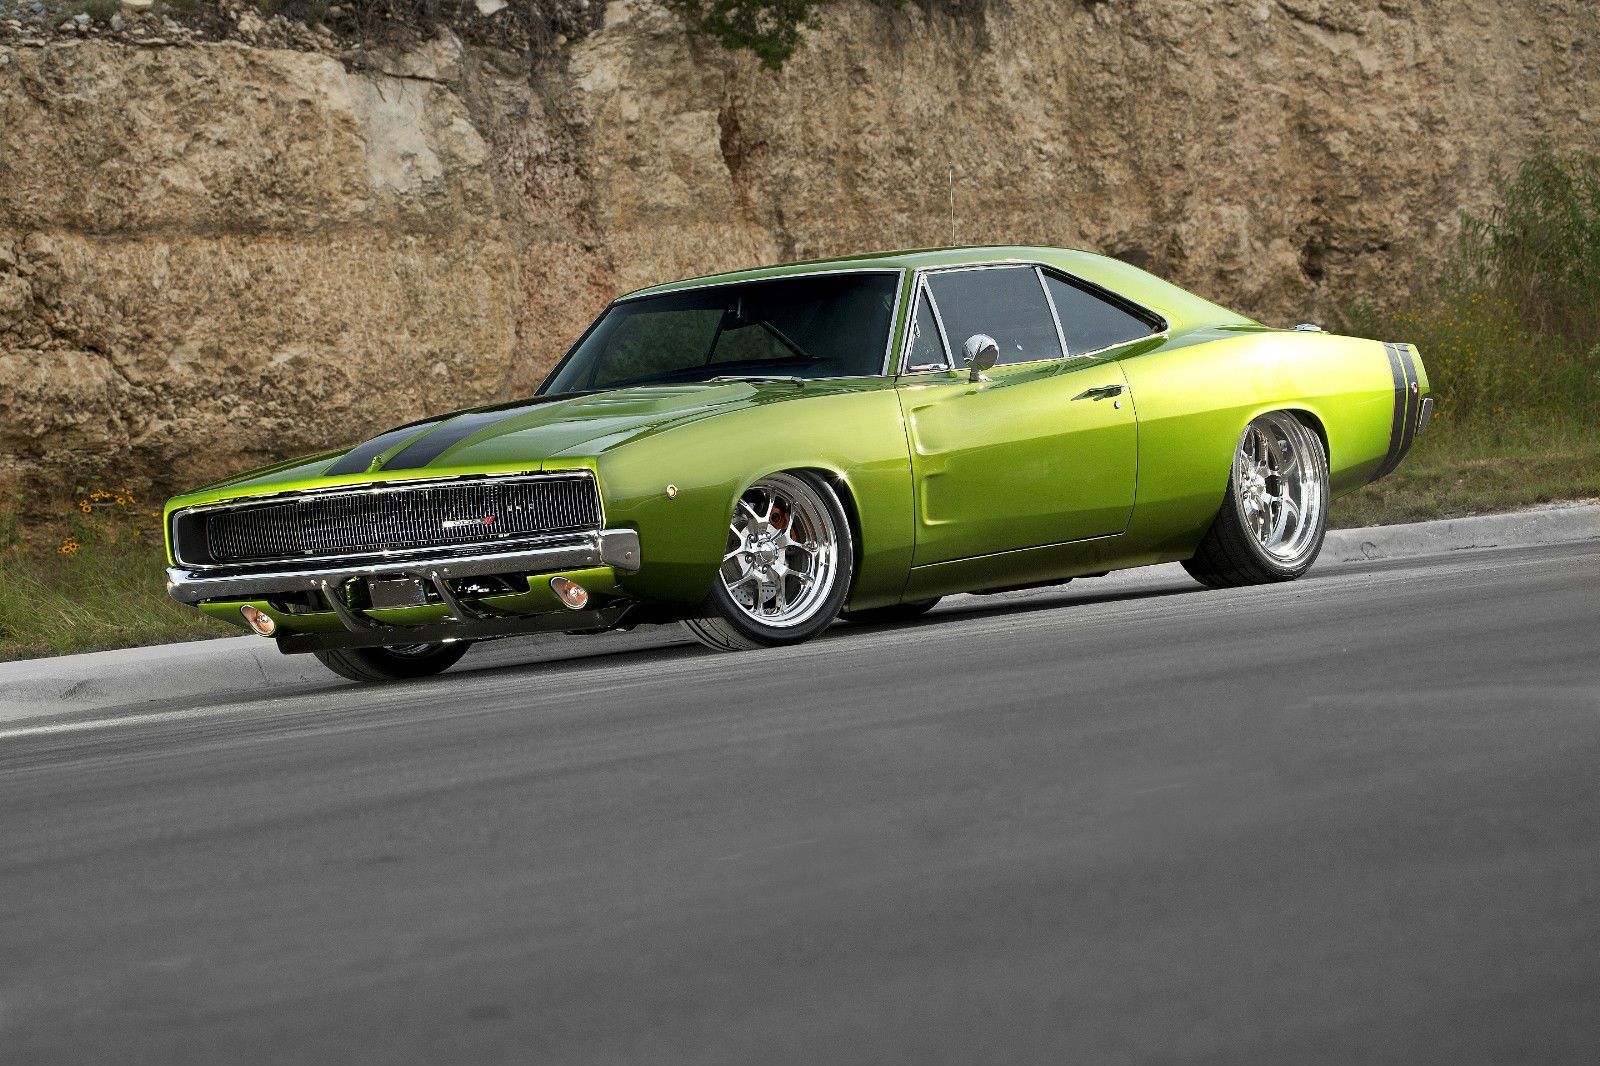 pin by rob matthew on classic cars 1968 dodge charger. Black Bedroom Furniture Sets. Home Design Ideas